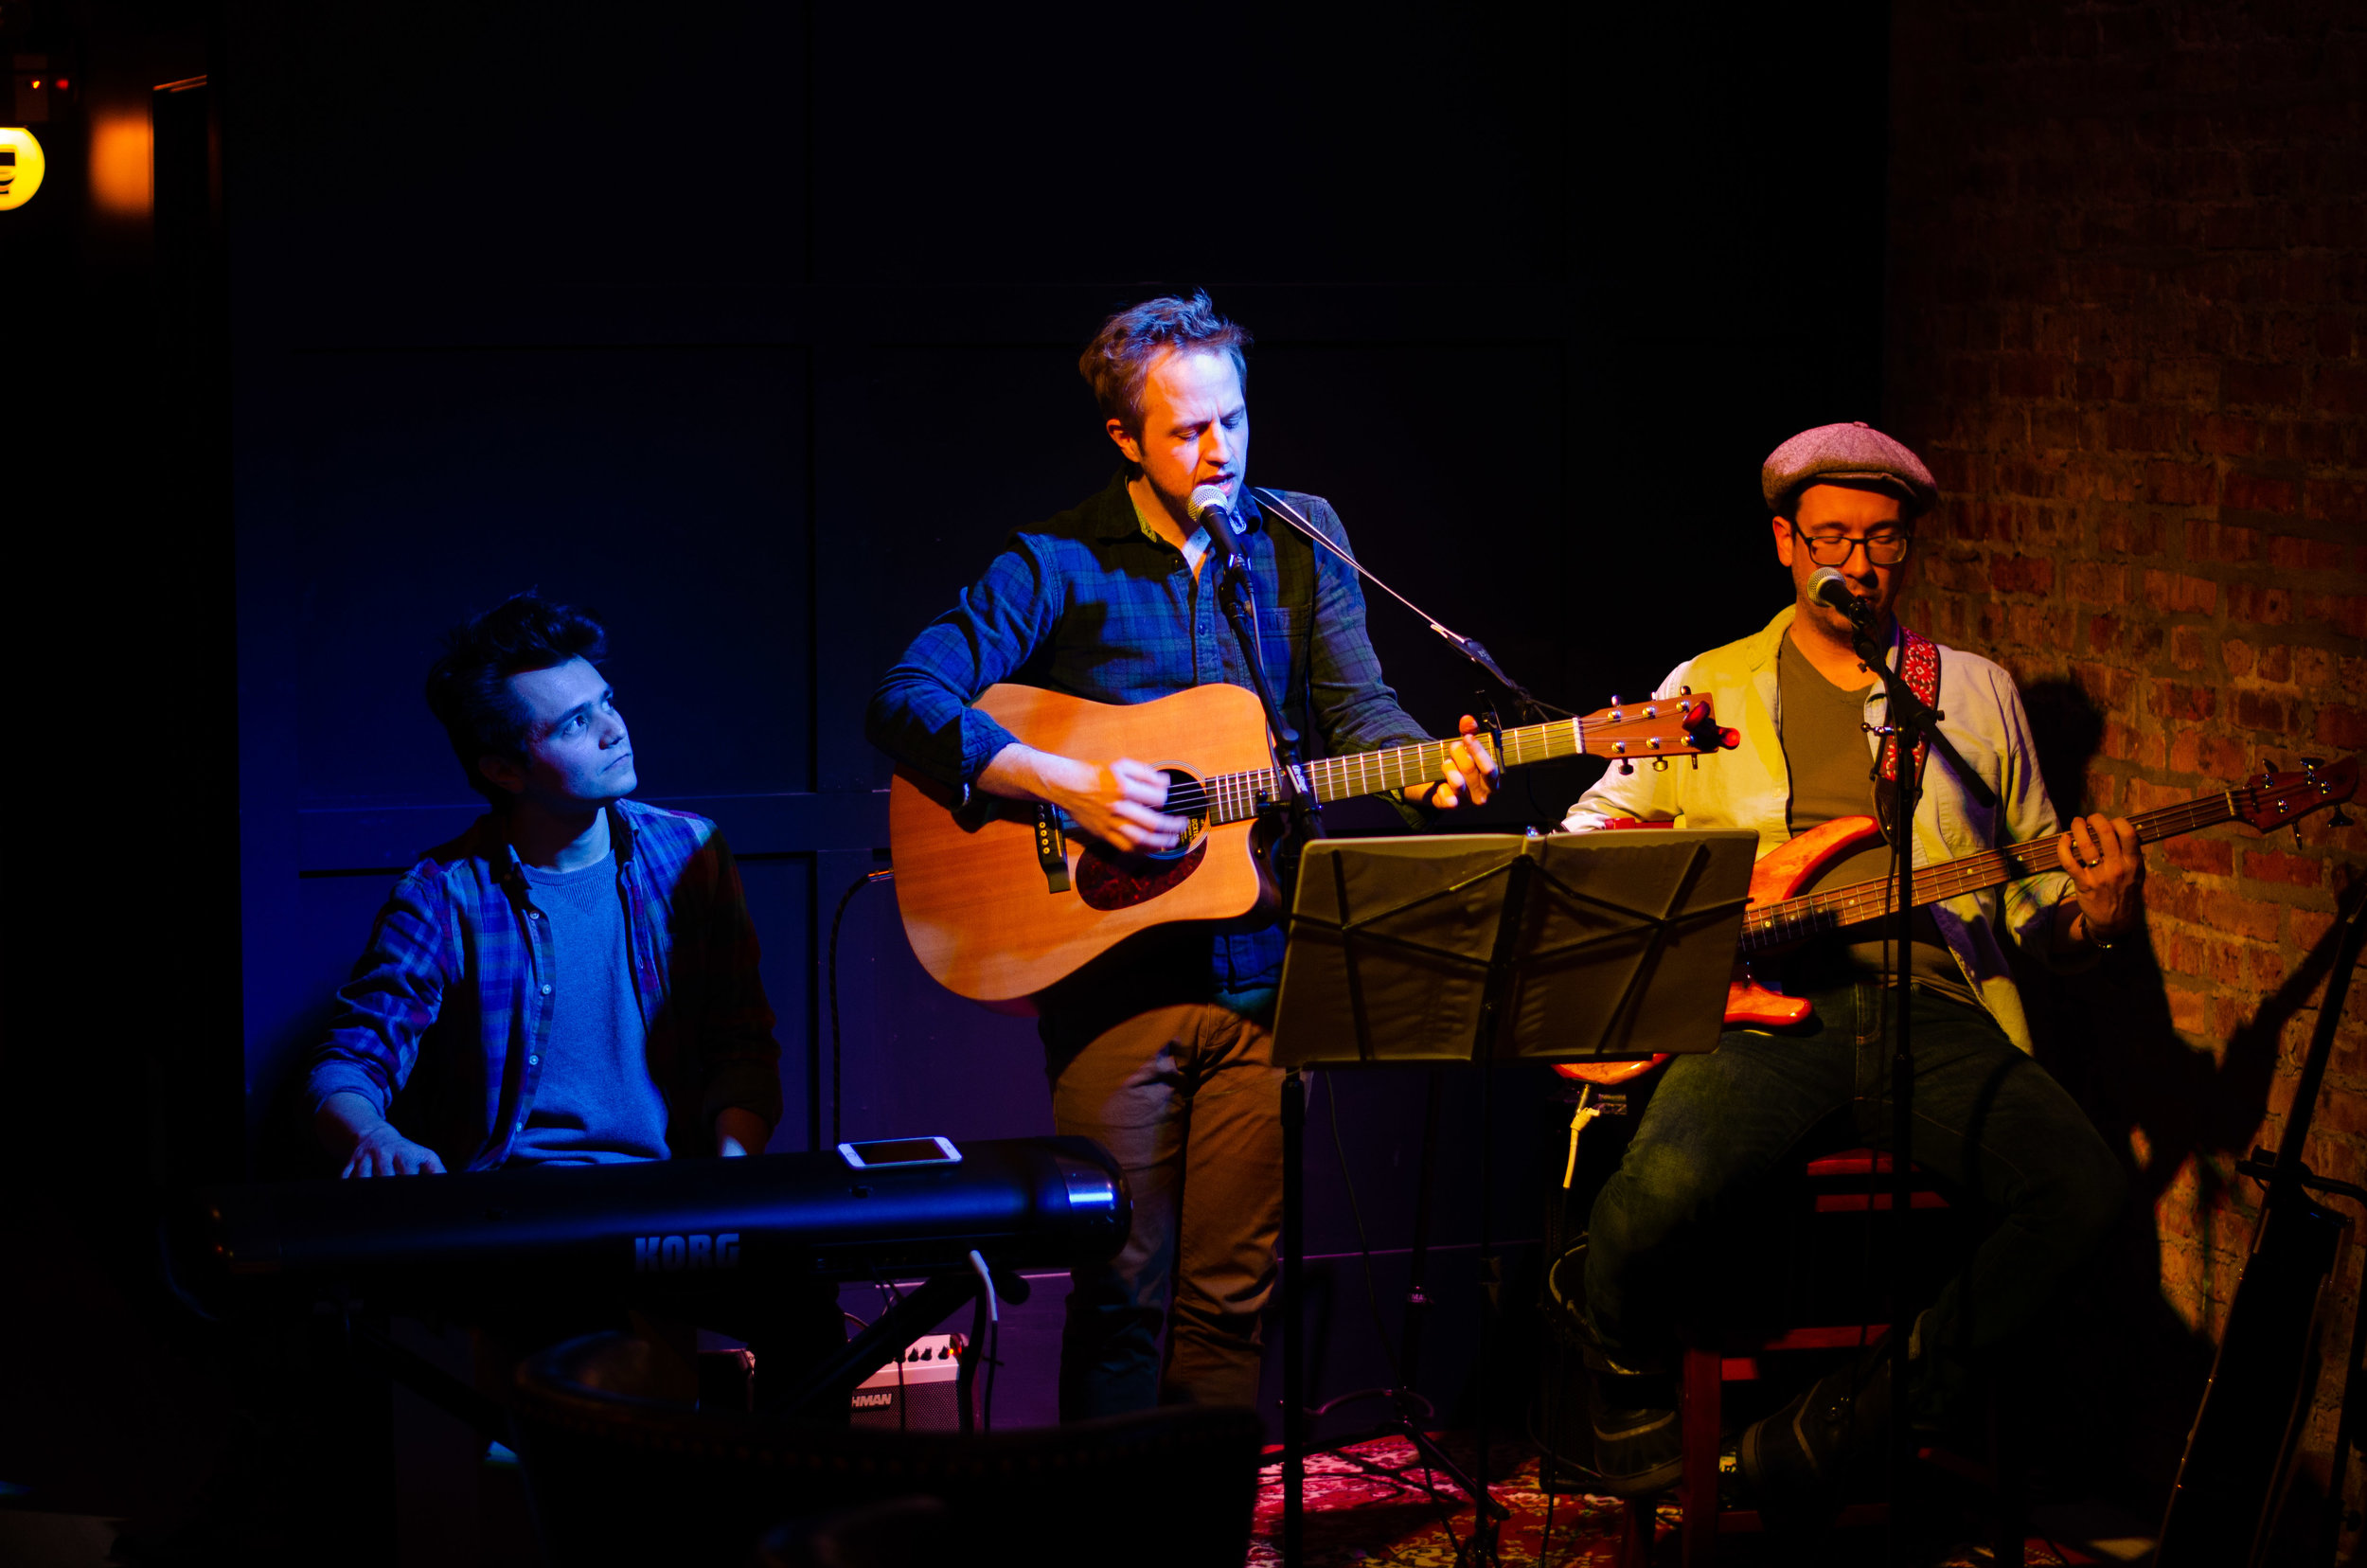 March 25, 7:30pm: The Winchesters, Dominick Vincent